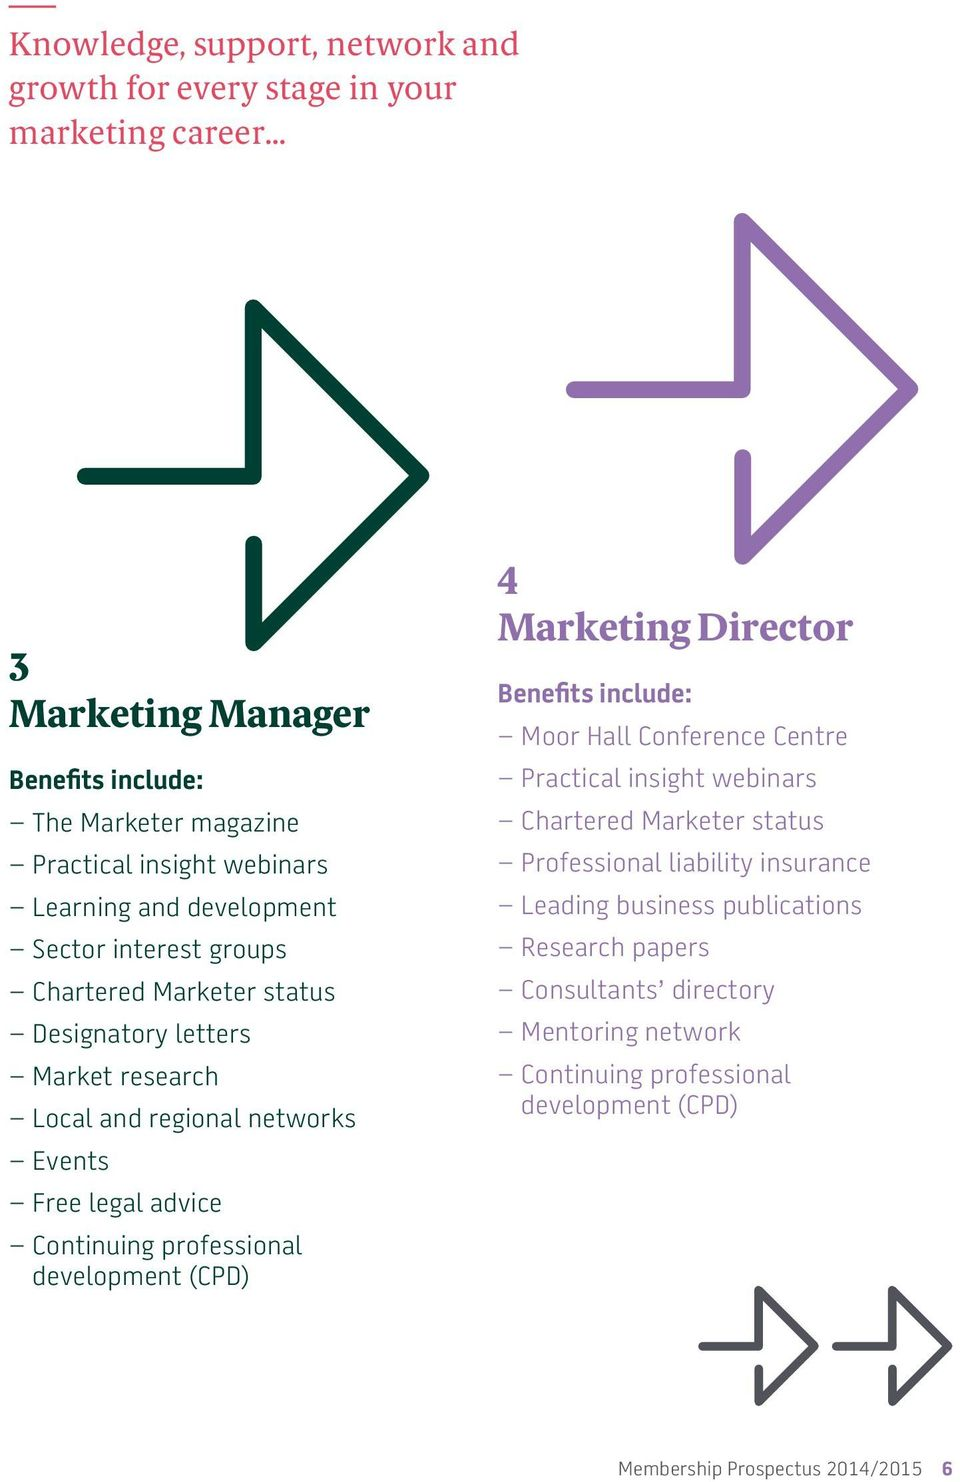 Continuing professional development (CPD) 4 Marketing Director Benefits include: Moor Hall Conference Centre Practical insight webinars Chartered Marketer status